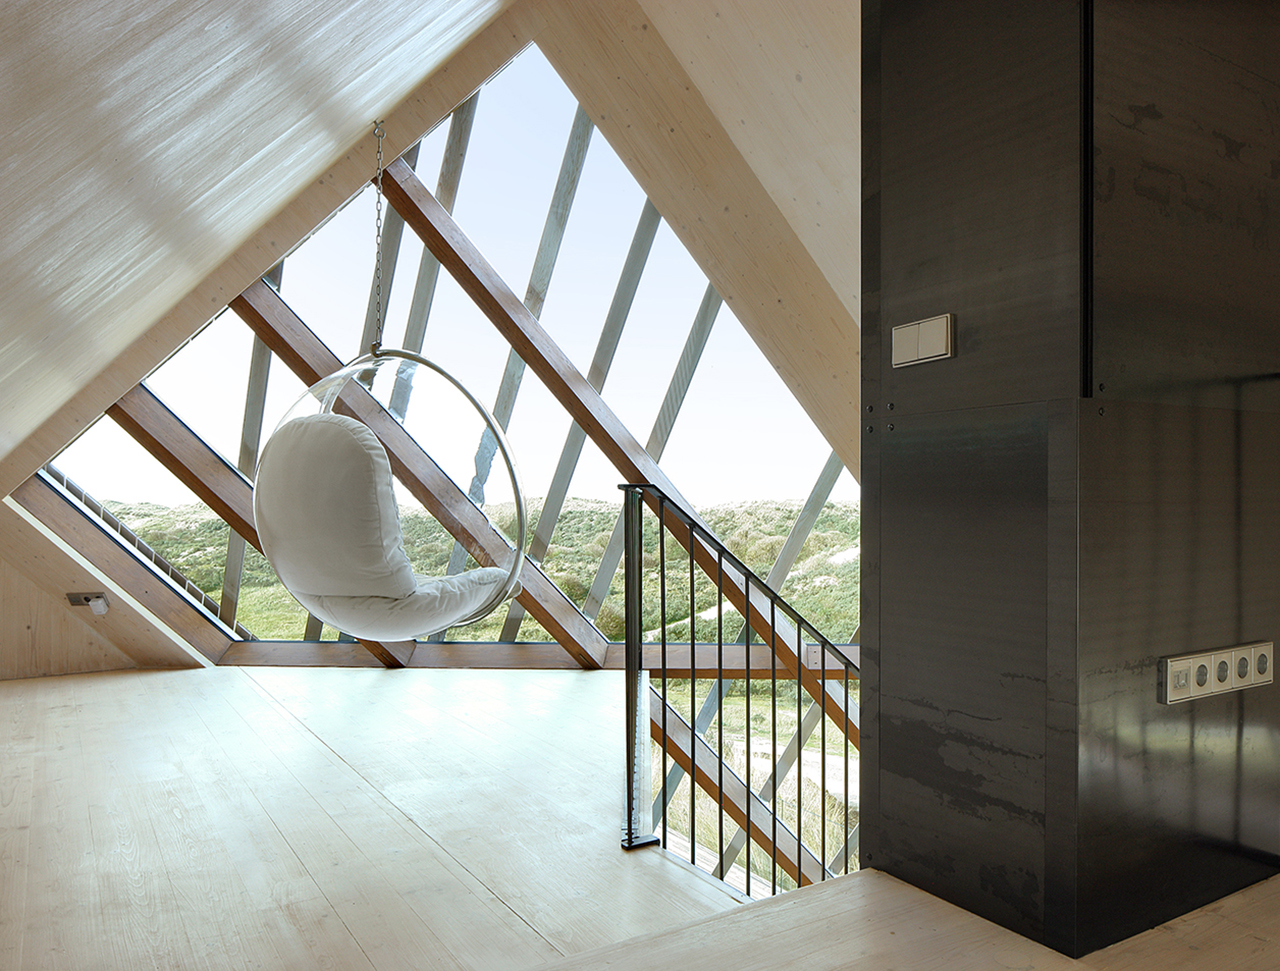 Amazing glass roof of Marc Koehler Architects' Dune House | KNSTRCT